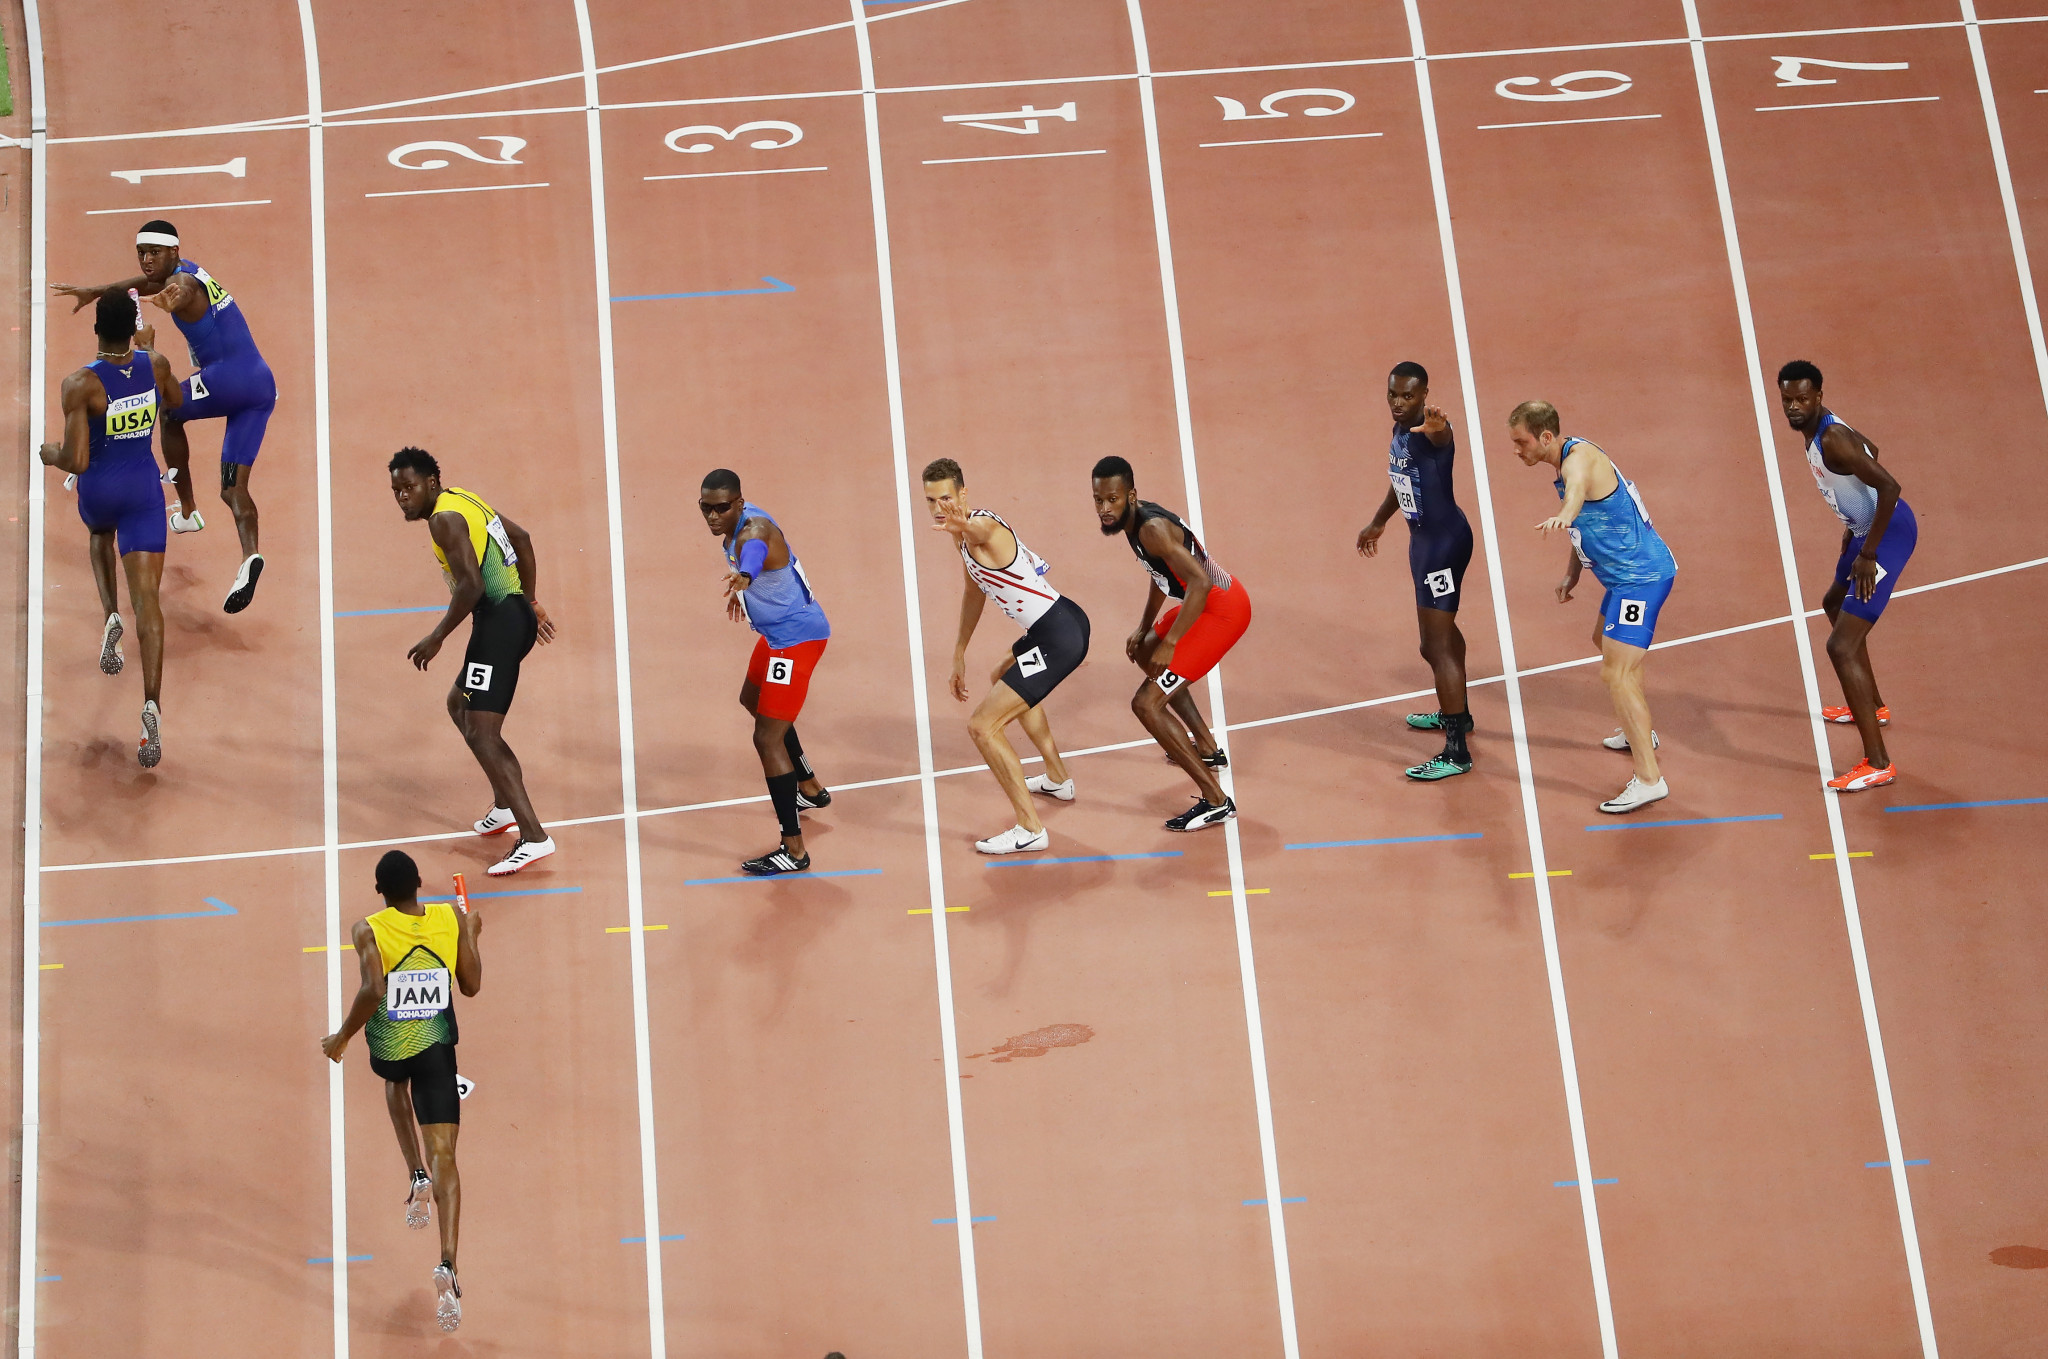 Wilbert London gets the baton from Michael Cherry in the men's 4x400 metres relay final to set the United States on their way to their third gold of the evening as they topped the overall medals table ©Getty Images